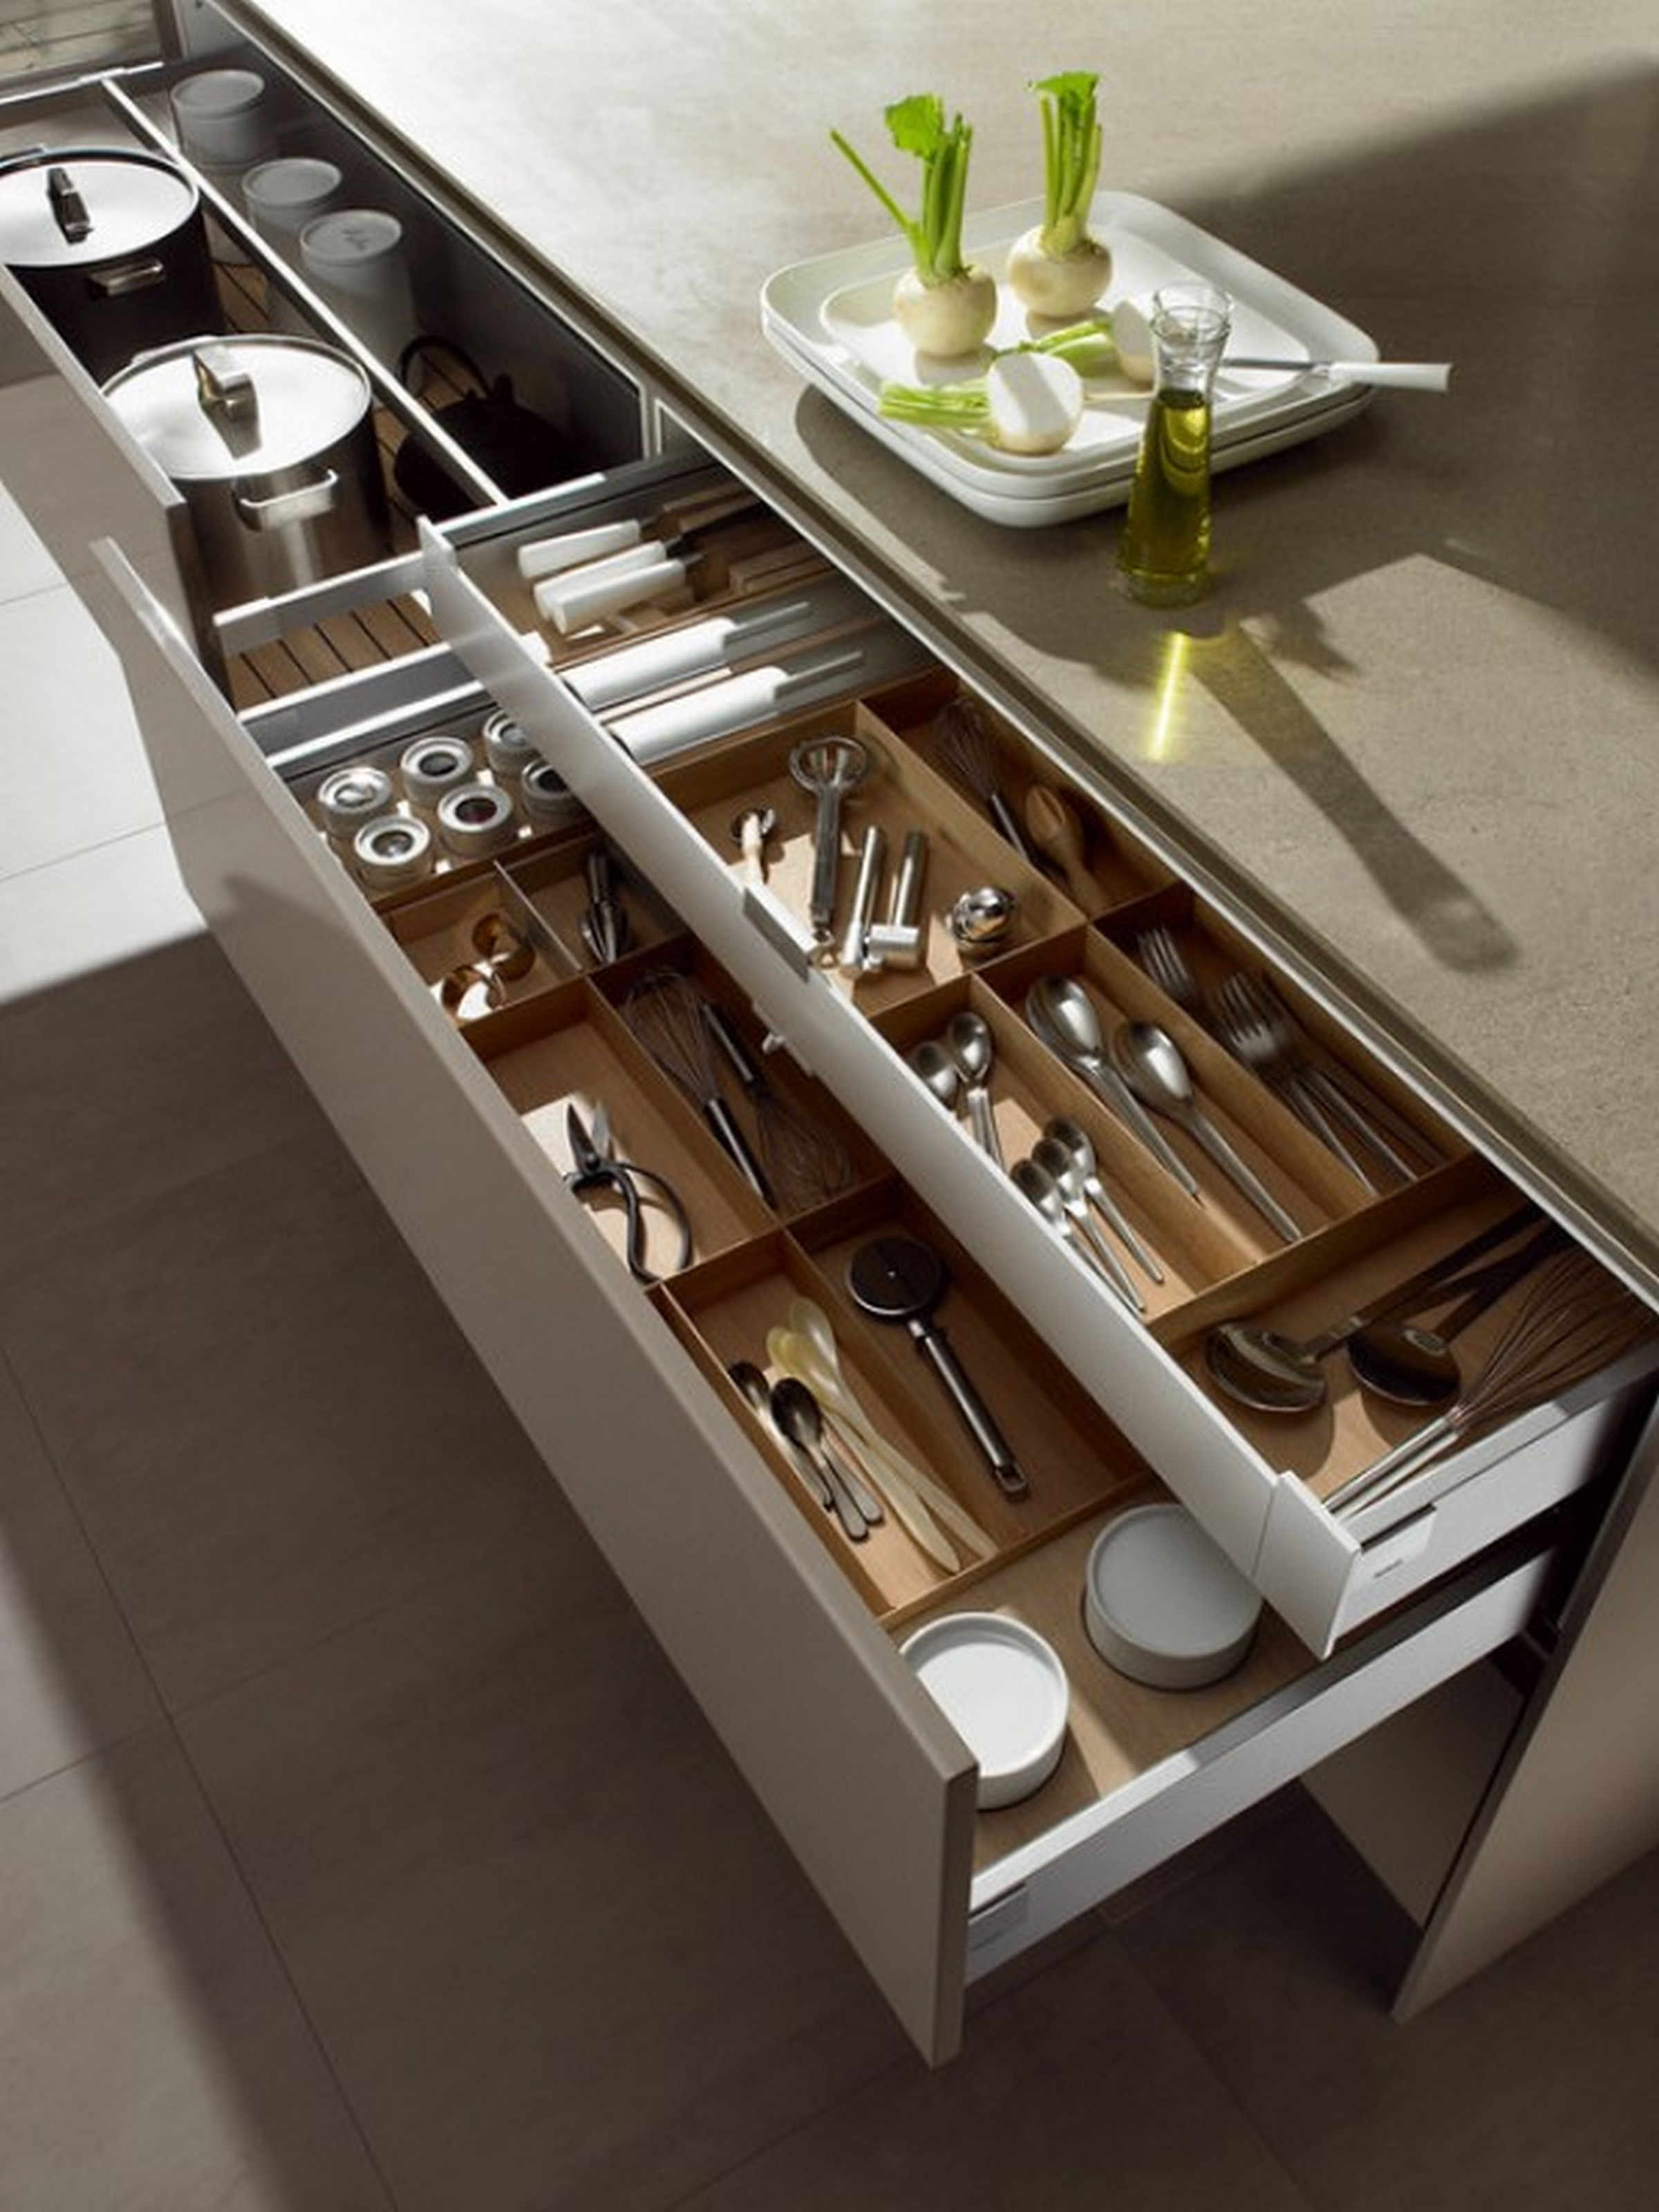 tips for perfectly organized kitchen drawers kitchen organization ideas Kitchen Drawer Organization Ideas without Handles